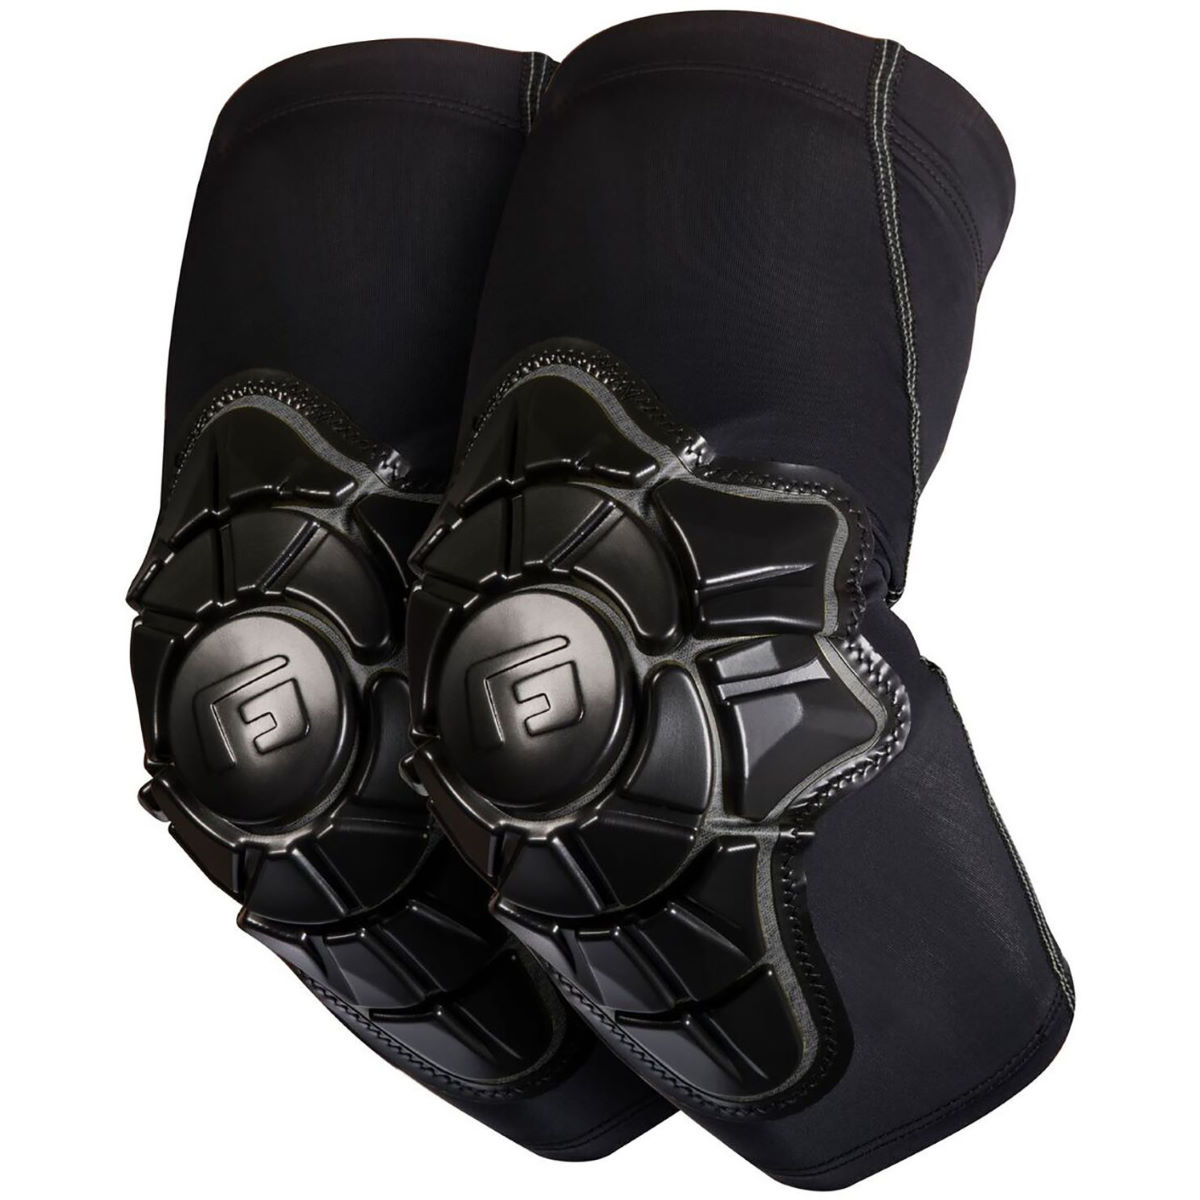 G-Form Pro-X Elbow Pad - Coderas